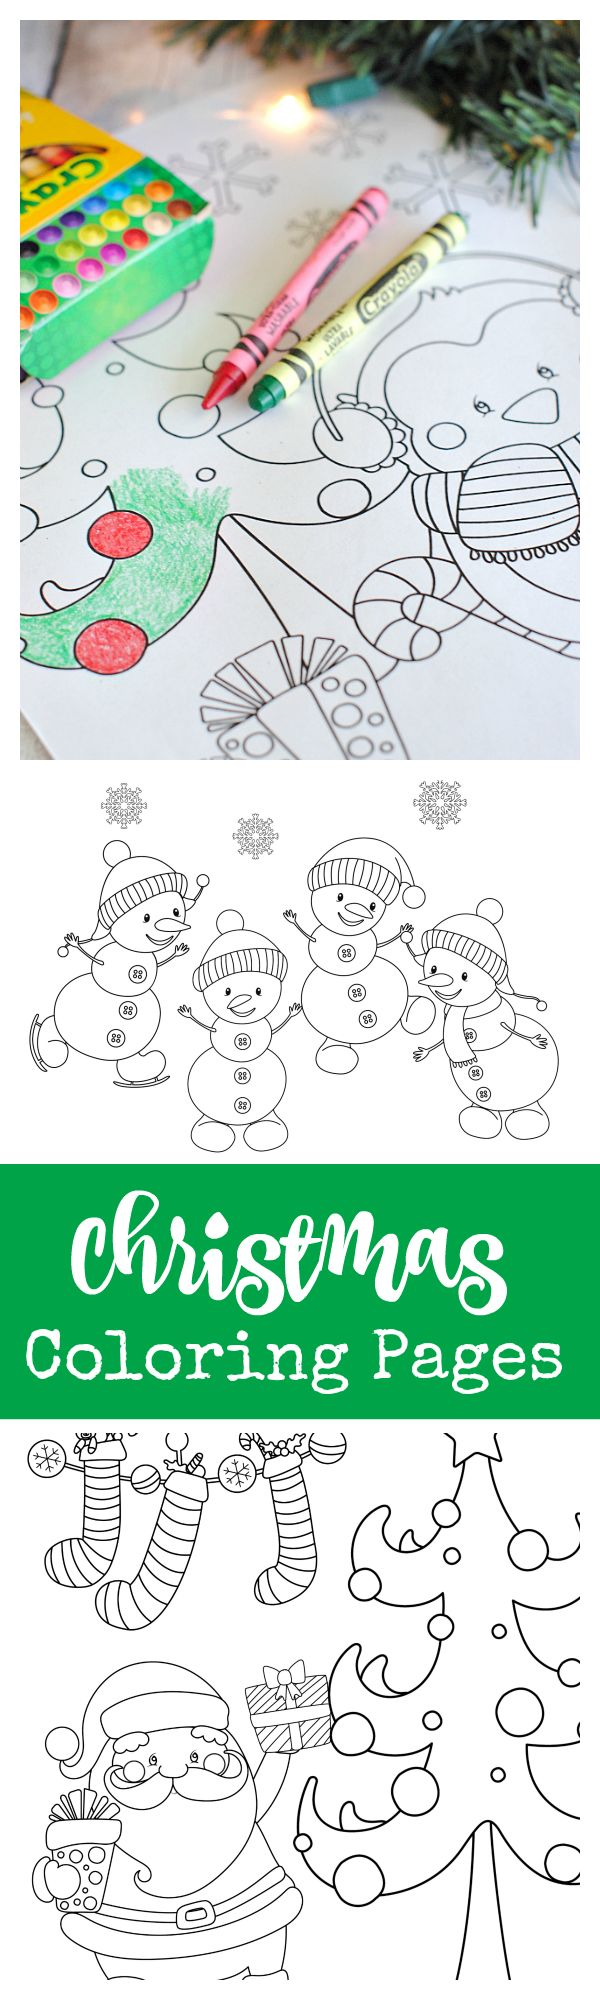 Color book party mn - Free Printable Christmas Coloring Pages